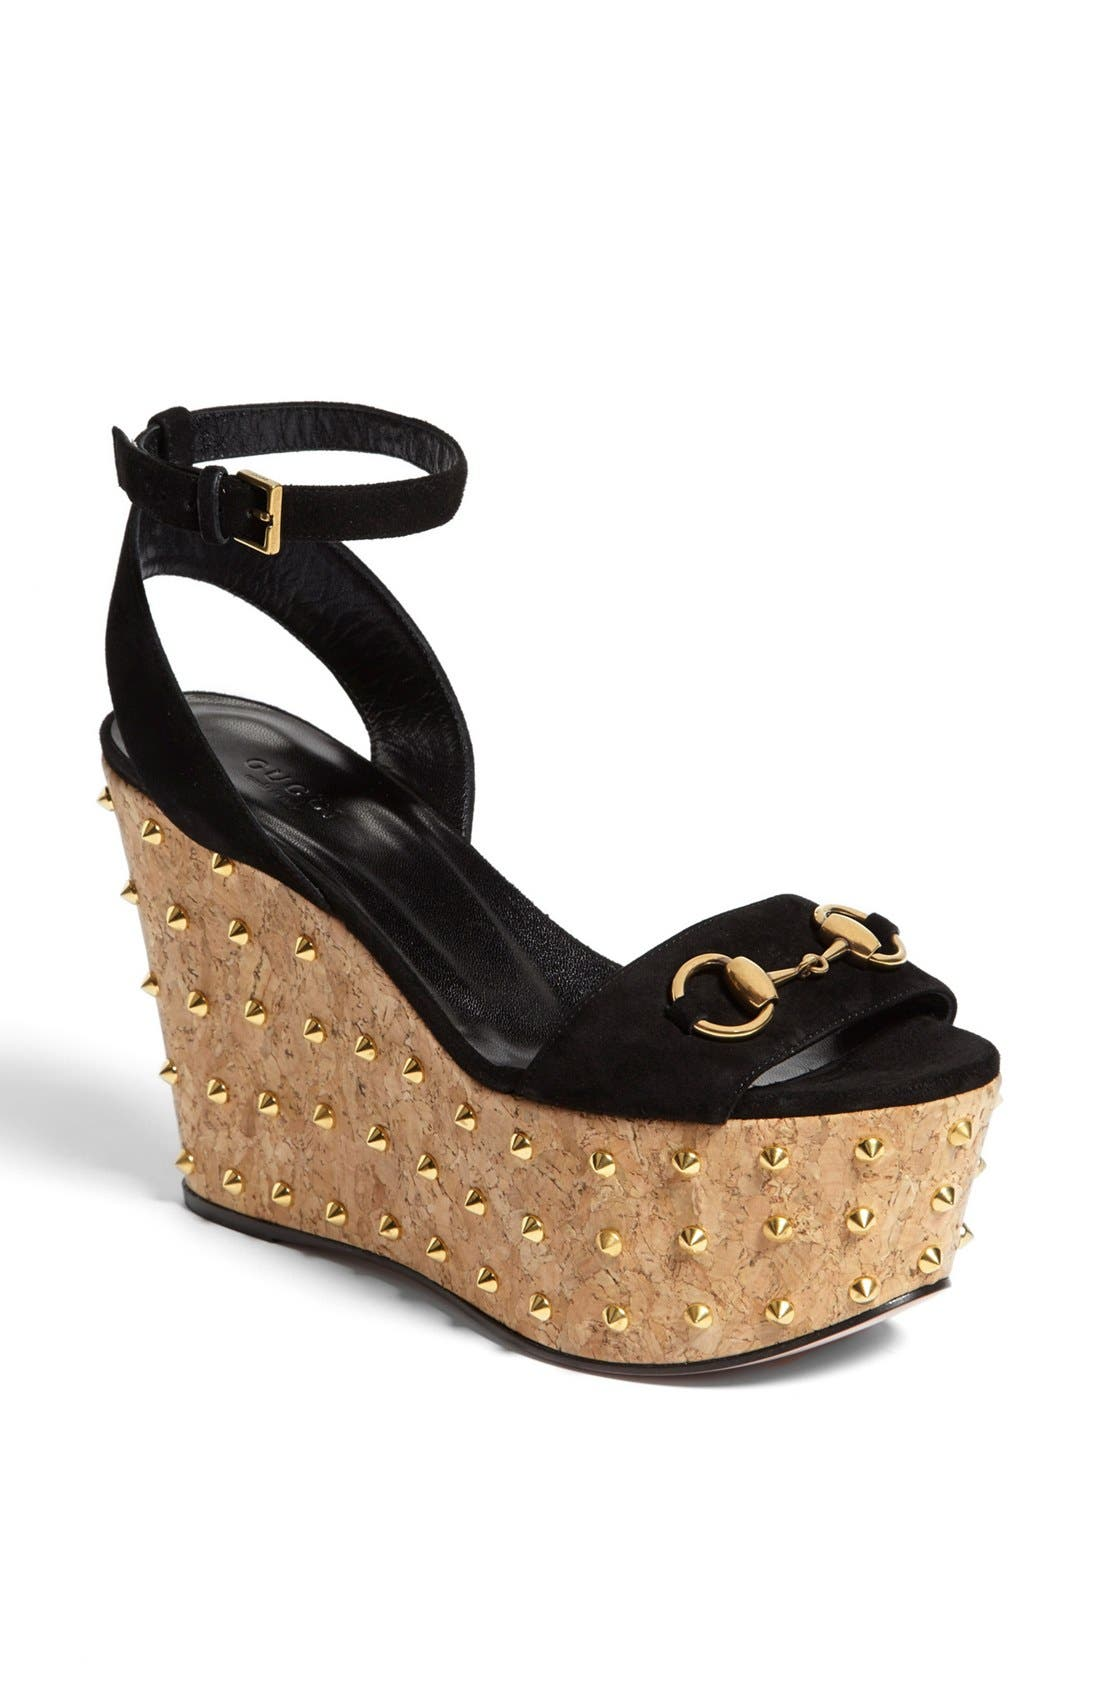 Alternate Image 1 Selected - Gucci 'Liliane' Studded Platform Sandal